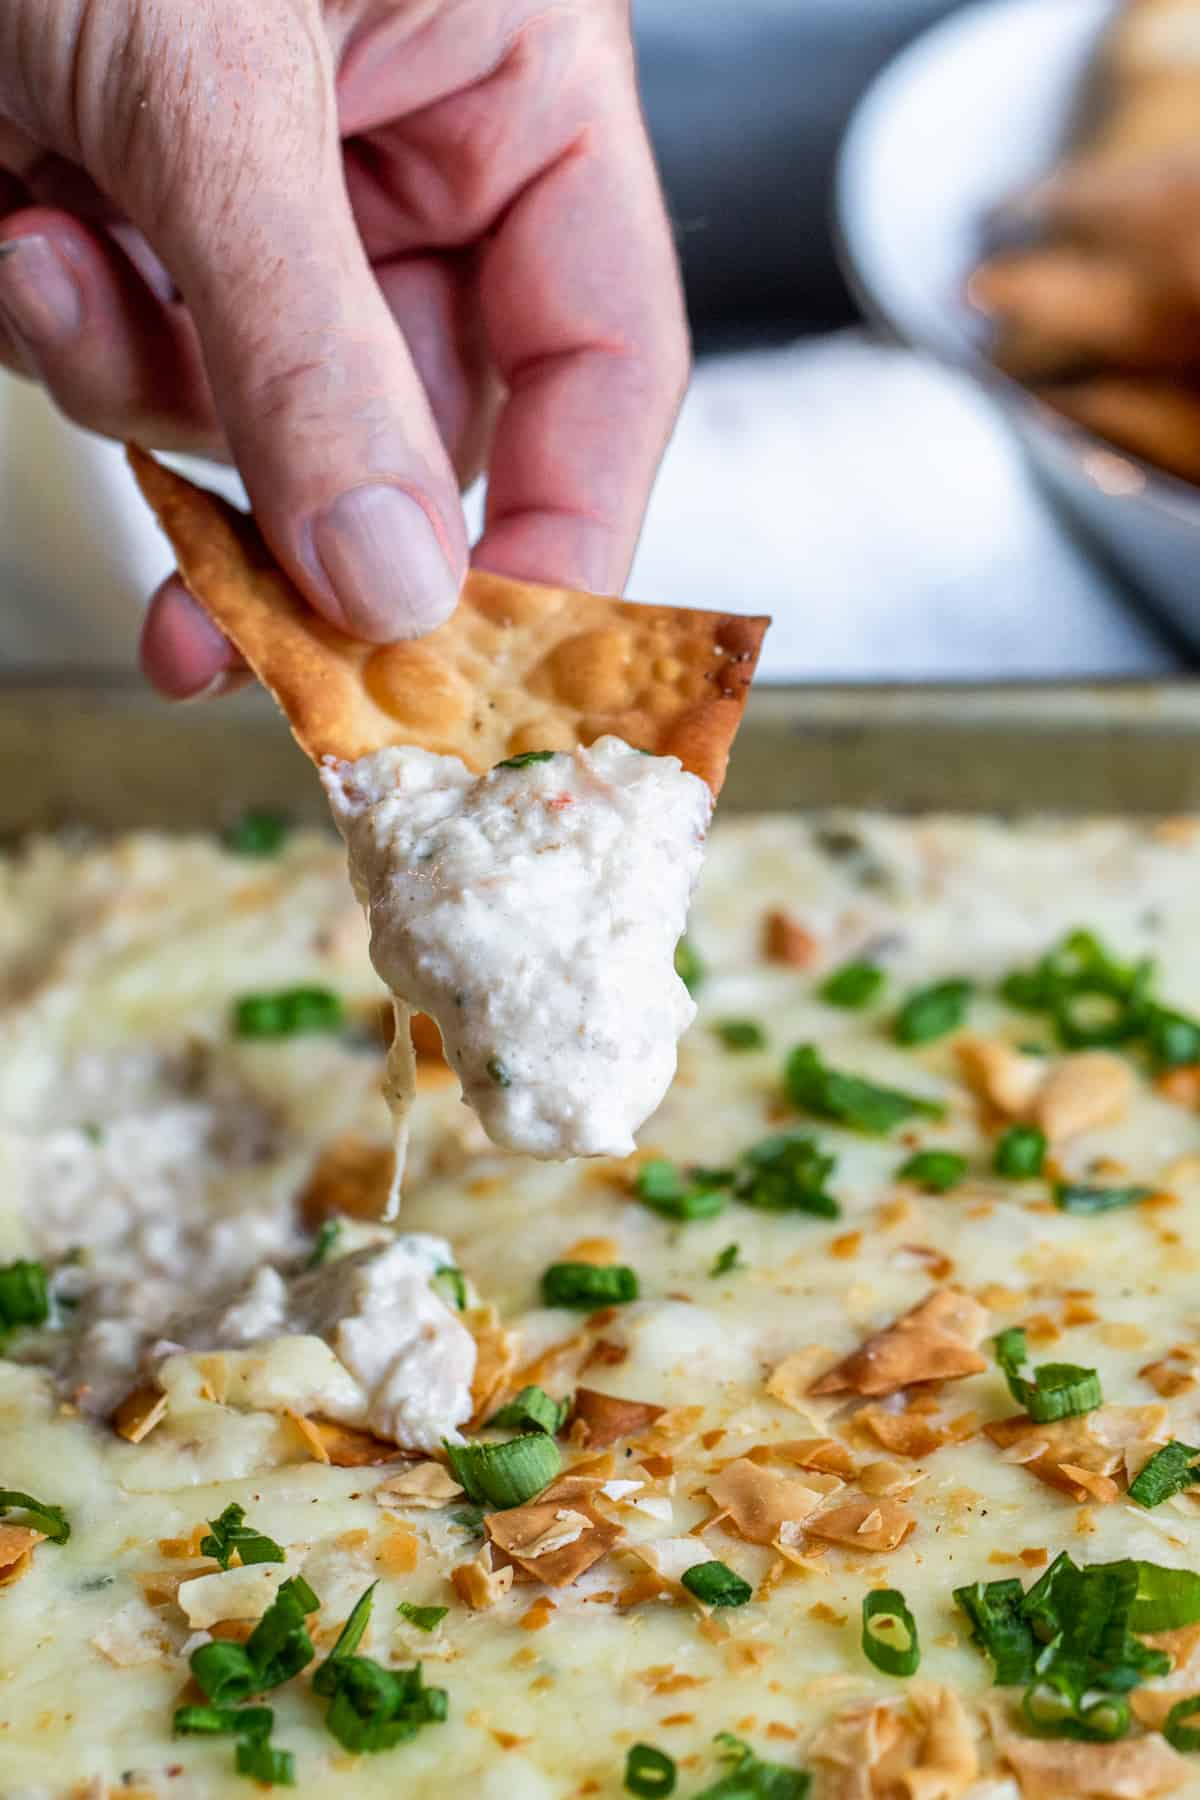 Hand dipping wonton chip into dip.